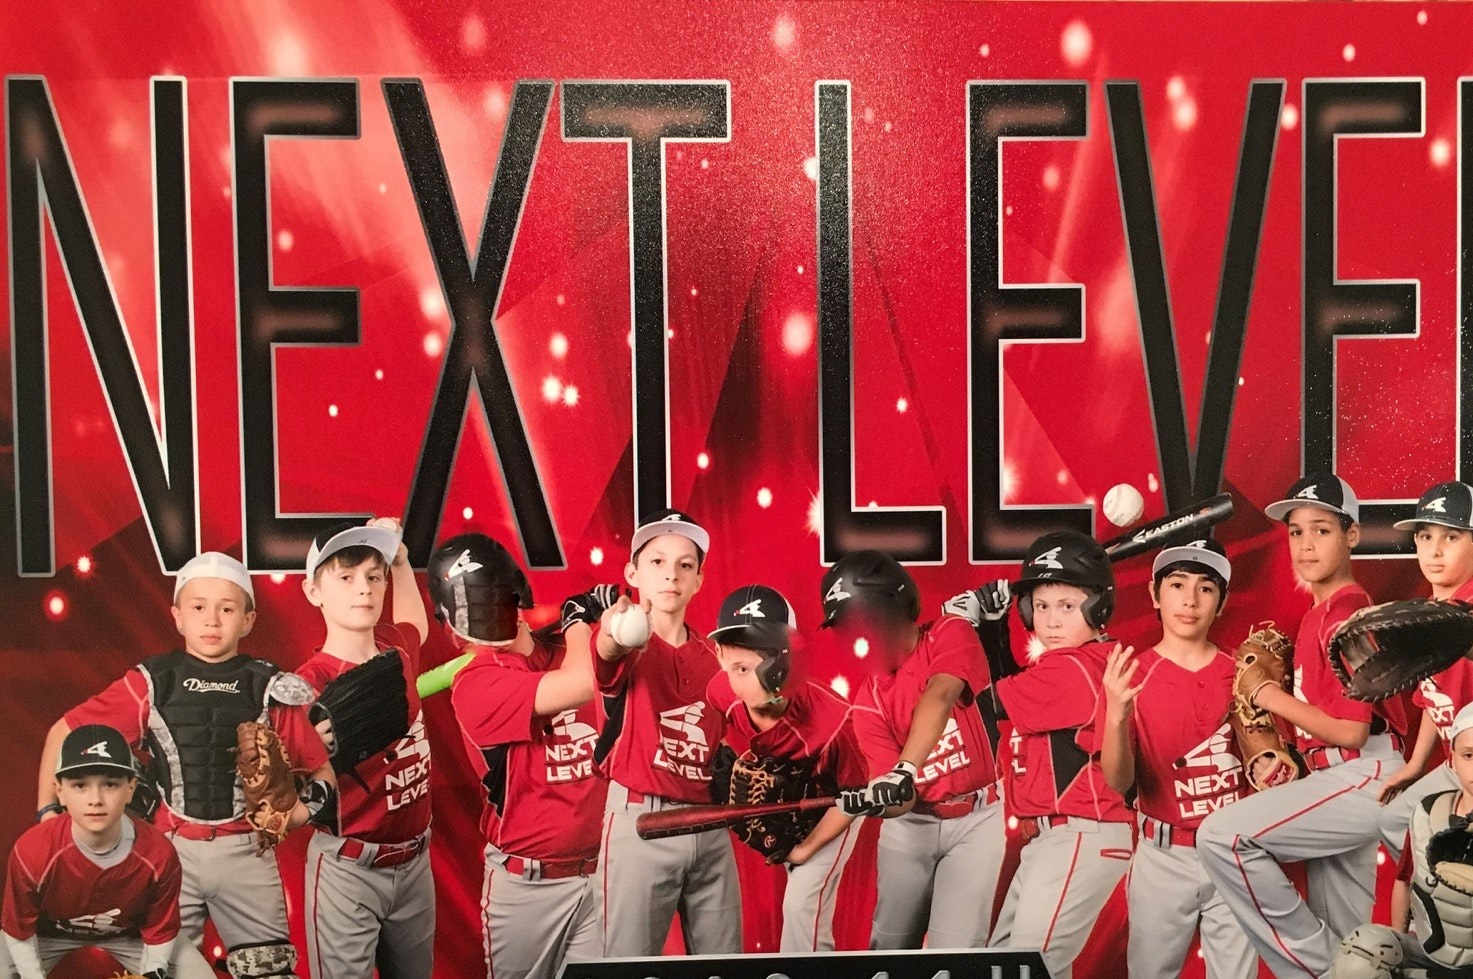 NEXT LEVEL 12U BASEBALL